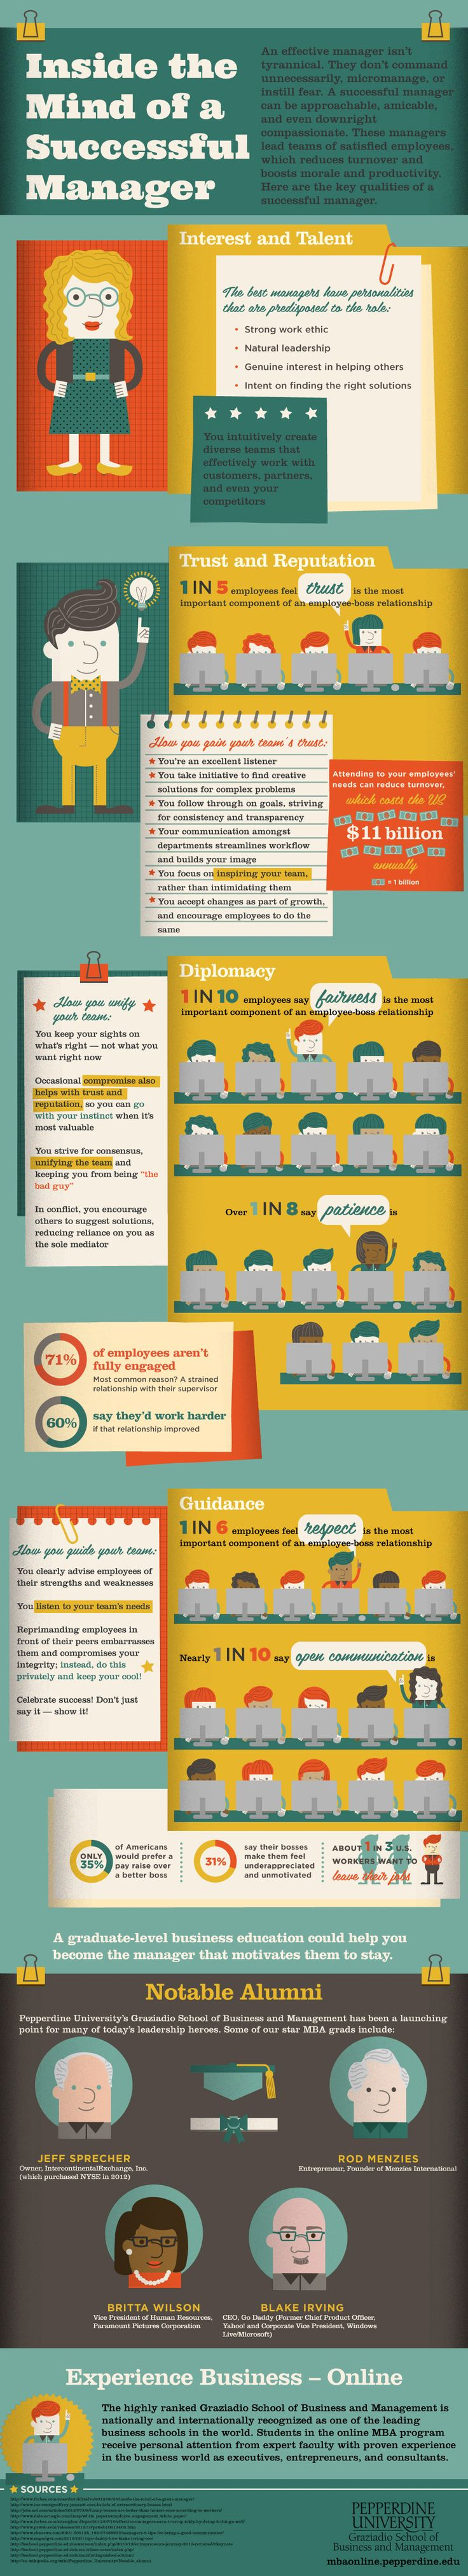 Employee engagement projects